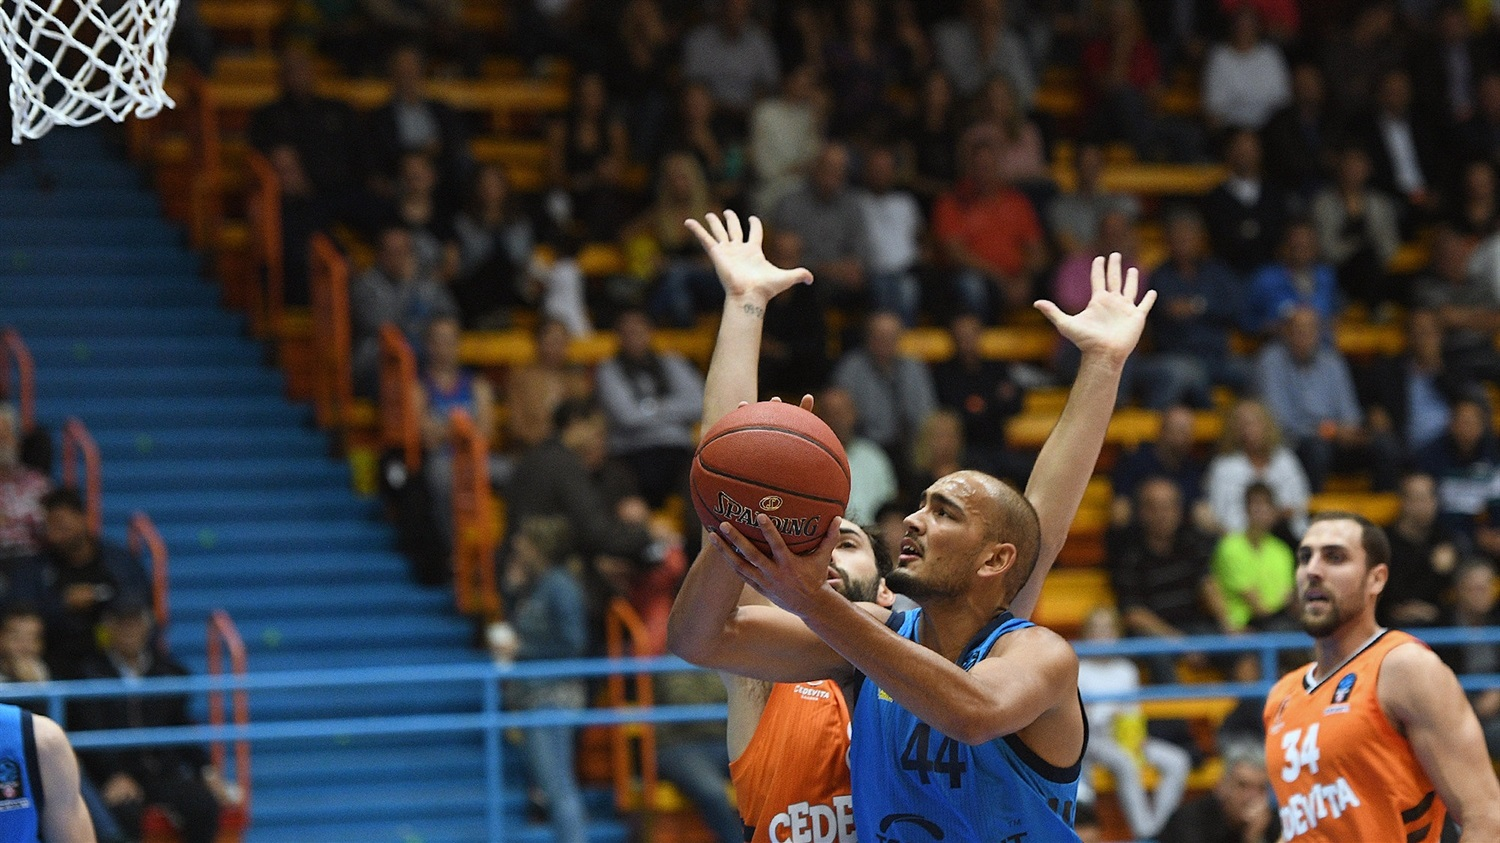 Stefan Peno - ALBA Berlin (photo Cedevita) - EC18